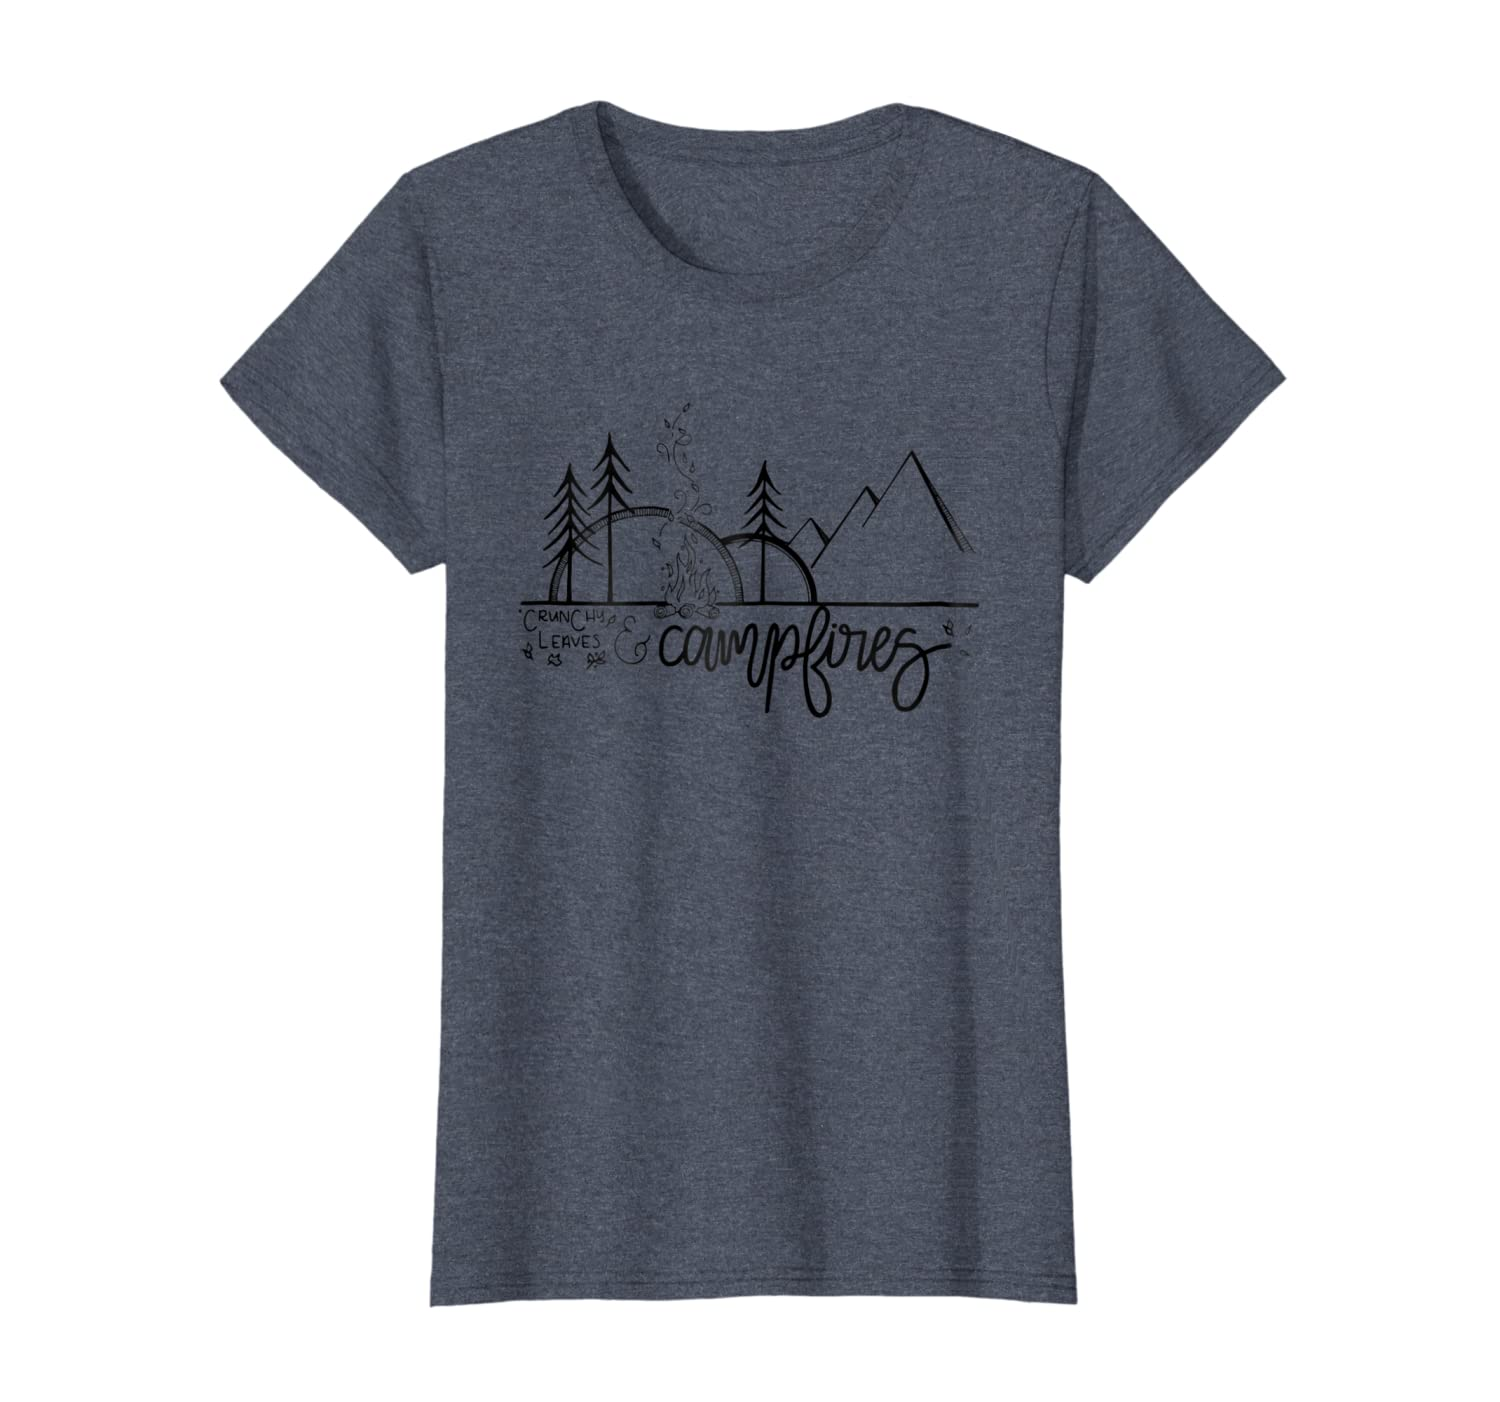 Crunchy Leaves /& Campfires An Outdoor Autumn Camping Shirt